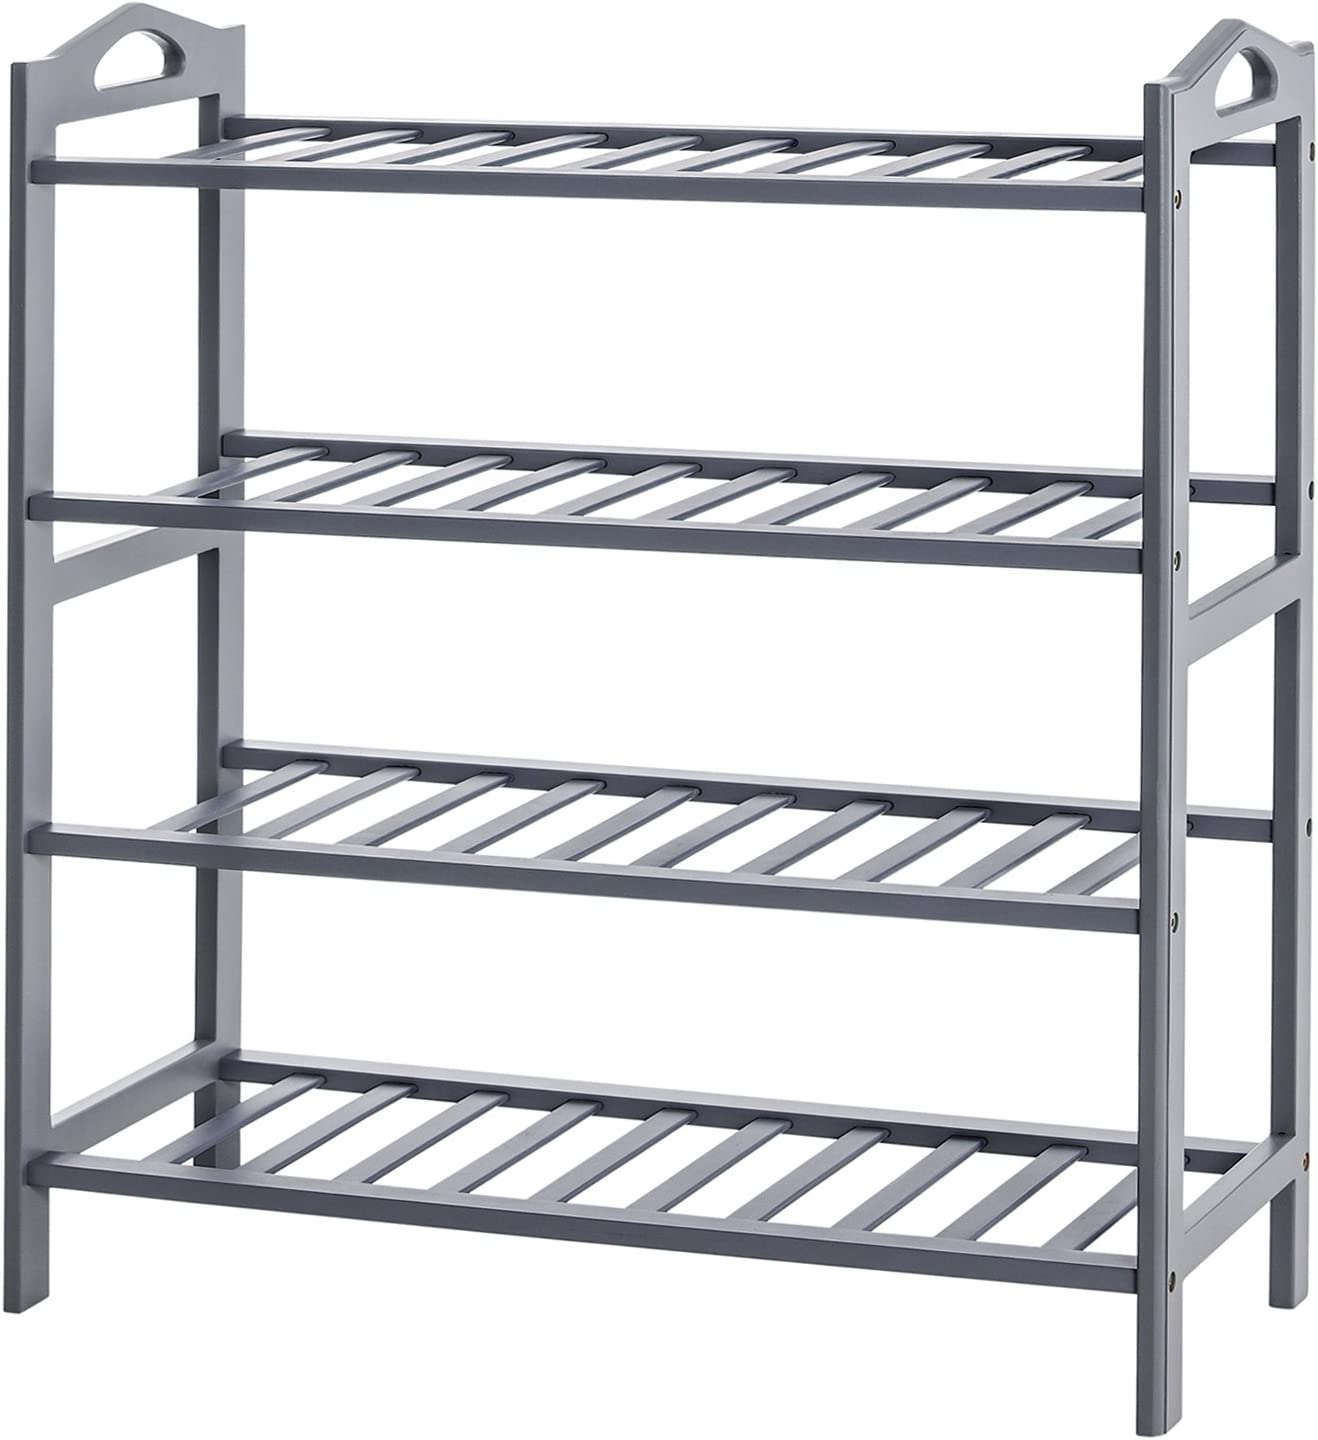 SONGMICS 4-Tier Shoe Rack, 100% Bamboo Entryway Shoe Shelf Storage Organizer, 30 Inch Wide Holds up to 16 Pairs, Ideal for Hallway Bathroom Garden, 26.6 x 10.3 x 29.4 Inches,Gray ULBS94GY